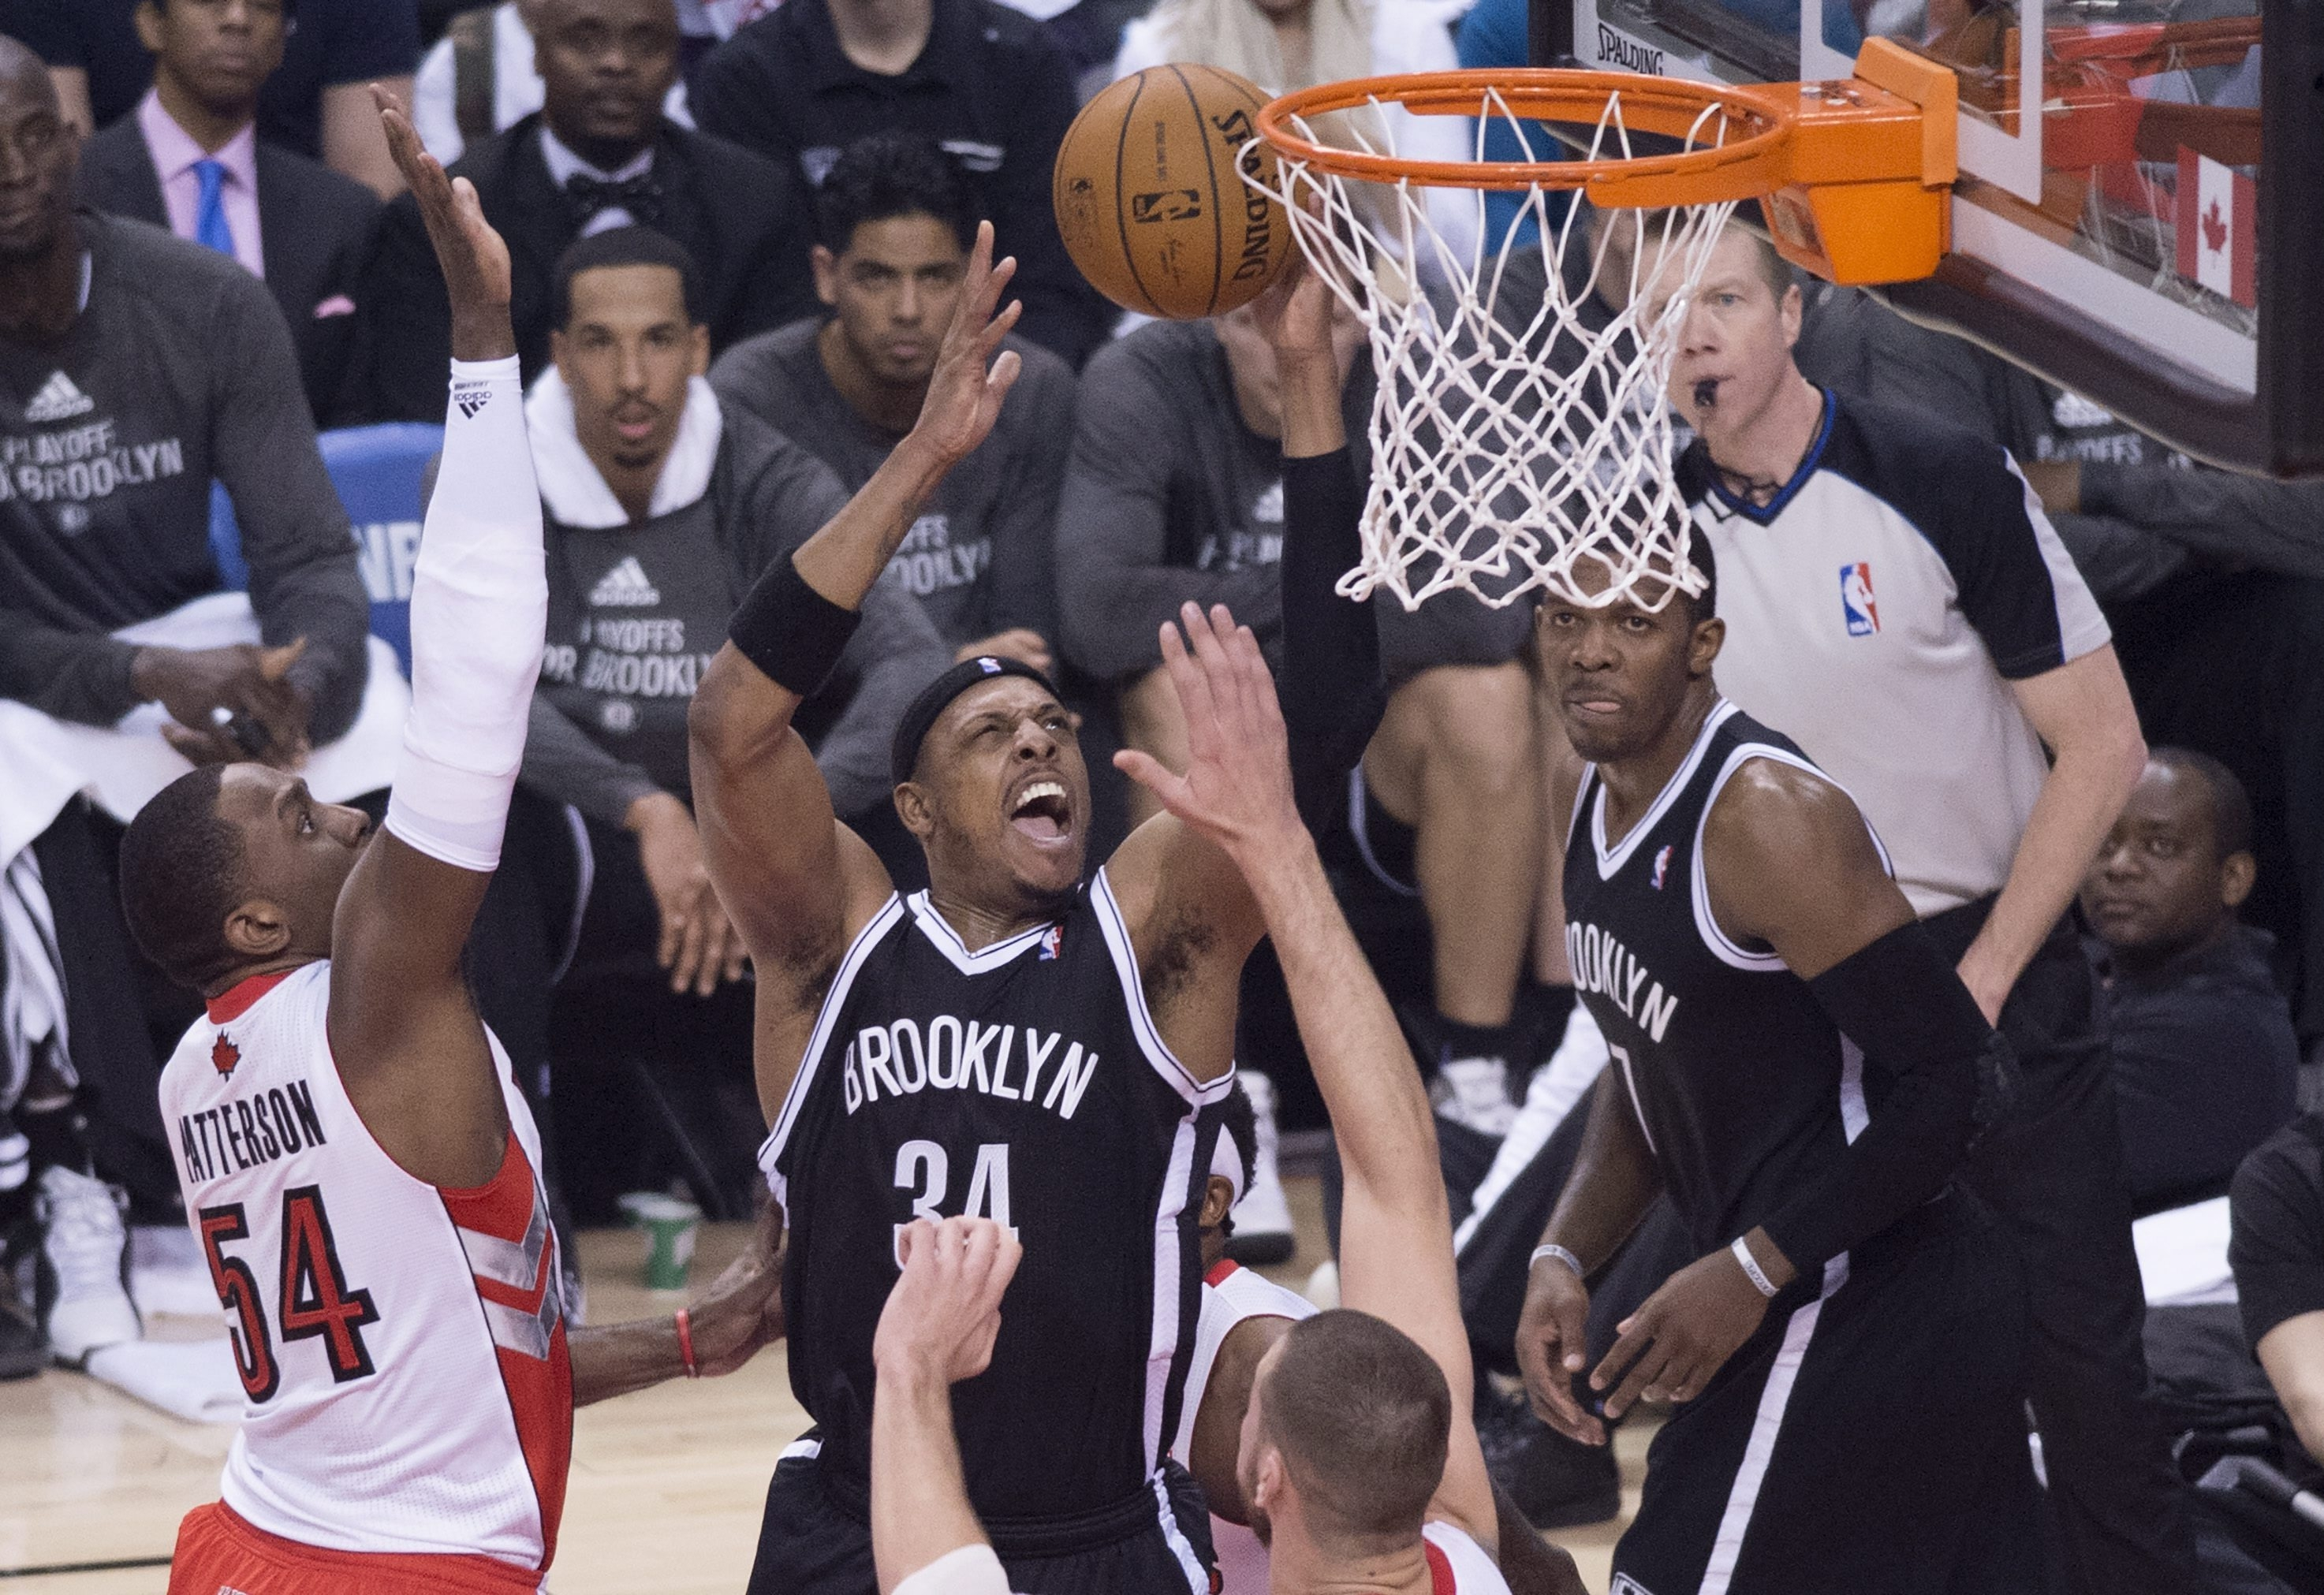 Brooklyn's Paul Pierce took control down the stretch to help the Nets grab the playoff series opener against Toronto.